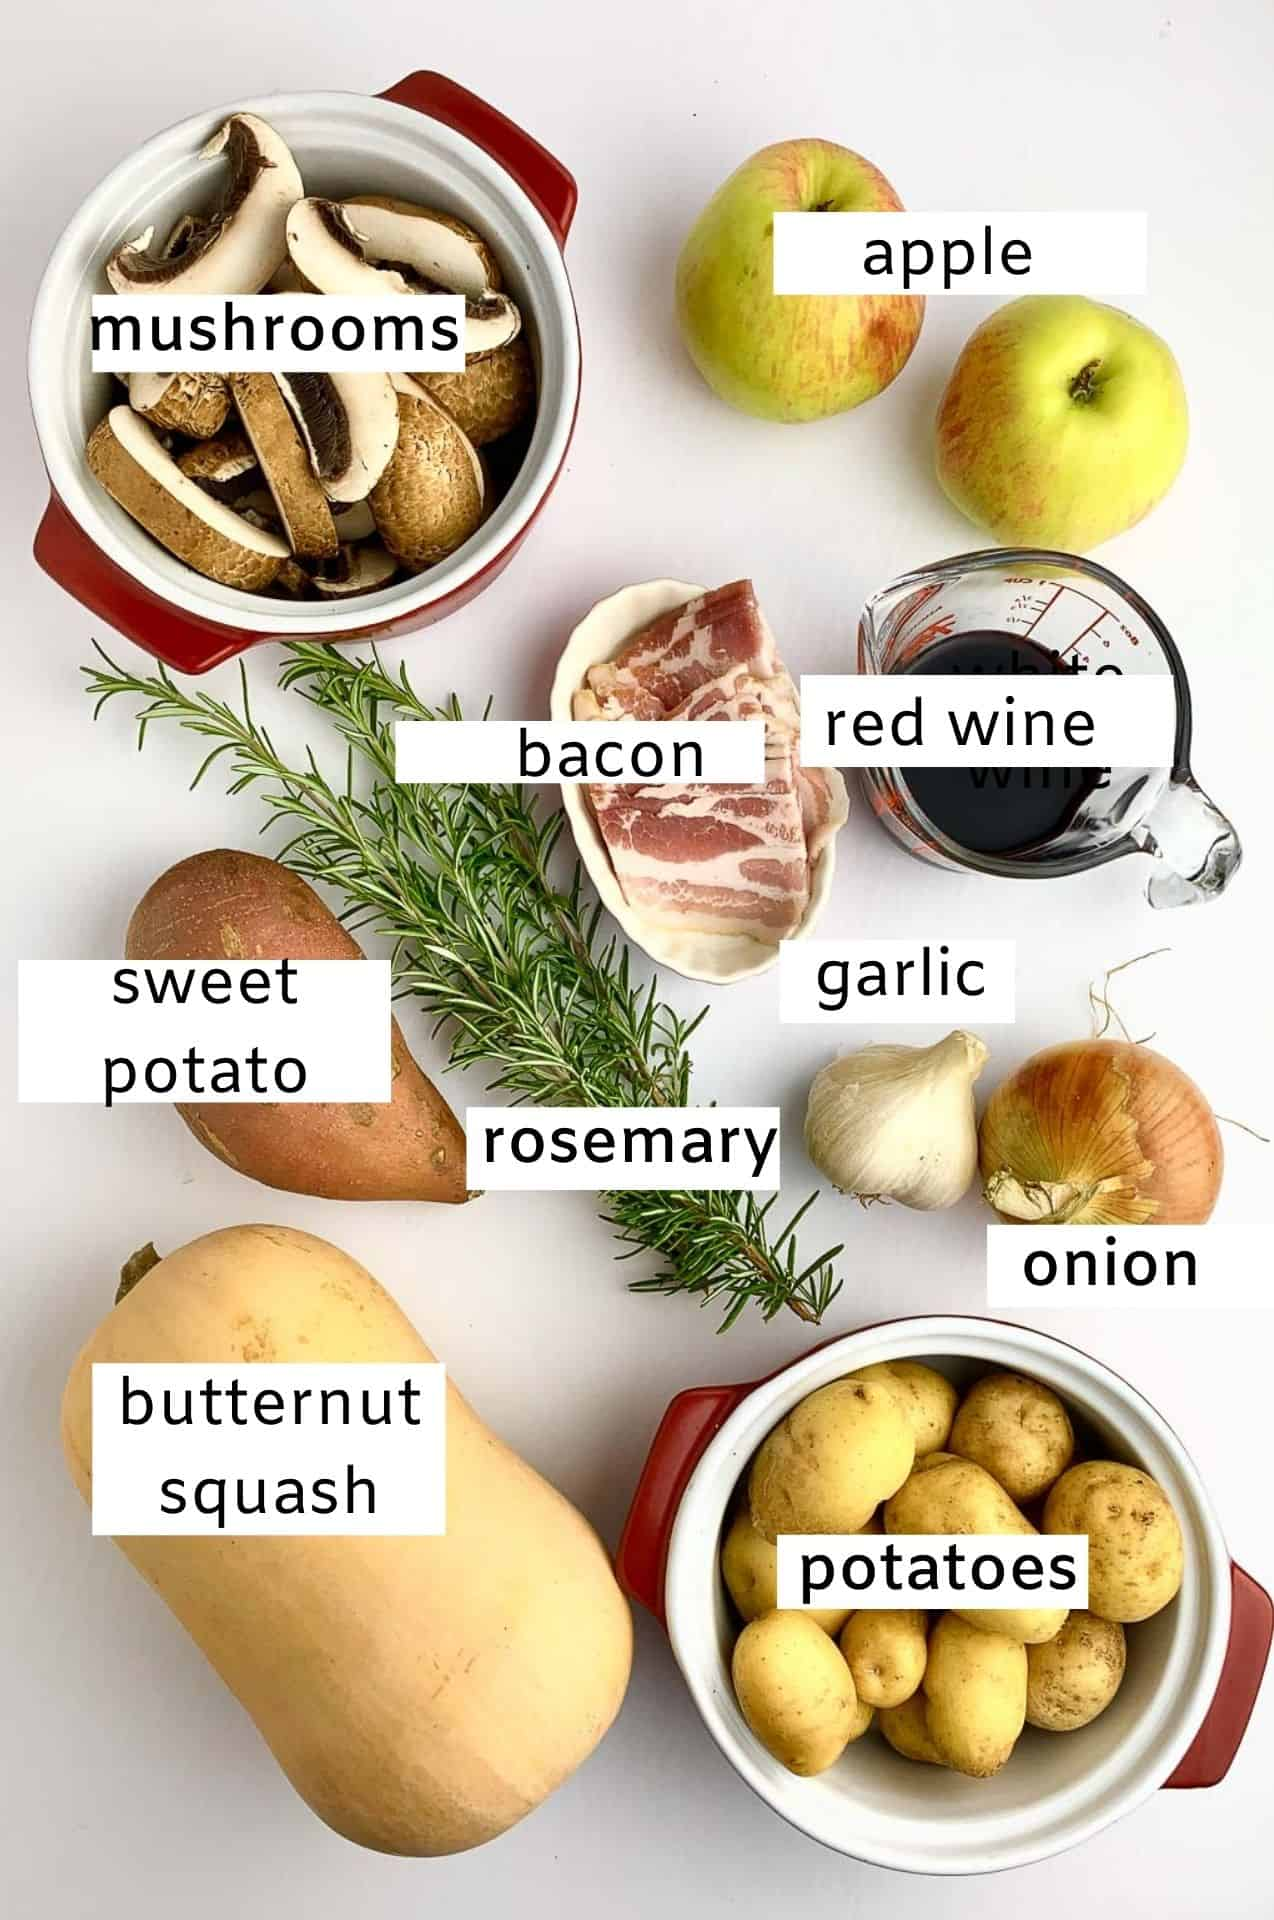 Labeled ingredients for Harvest  Chicken with Bacon, Rosemary and Apples